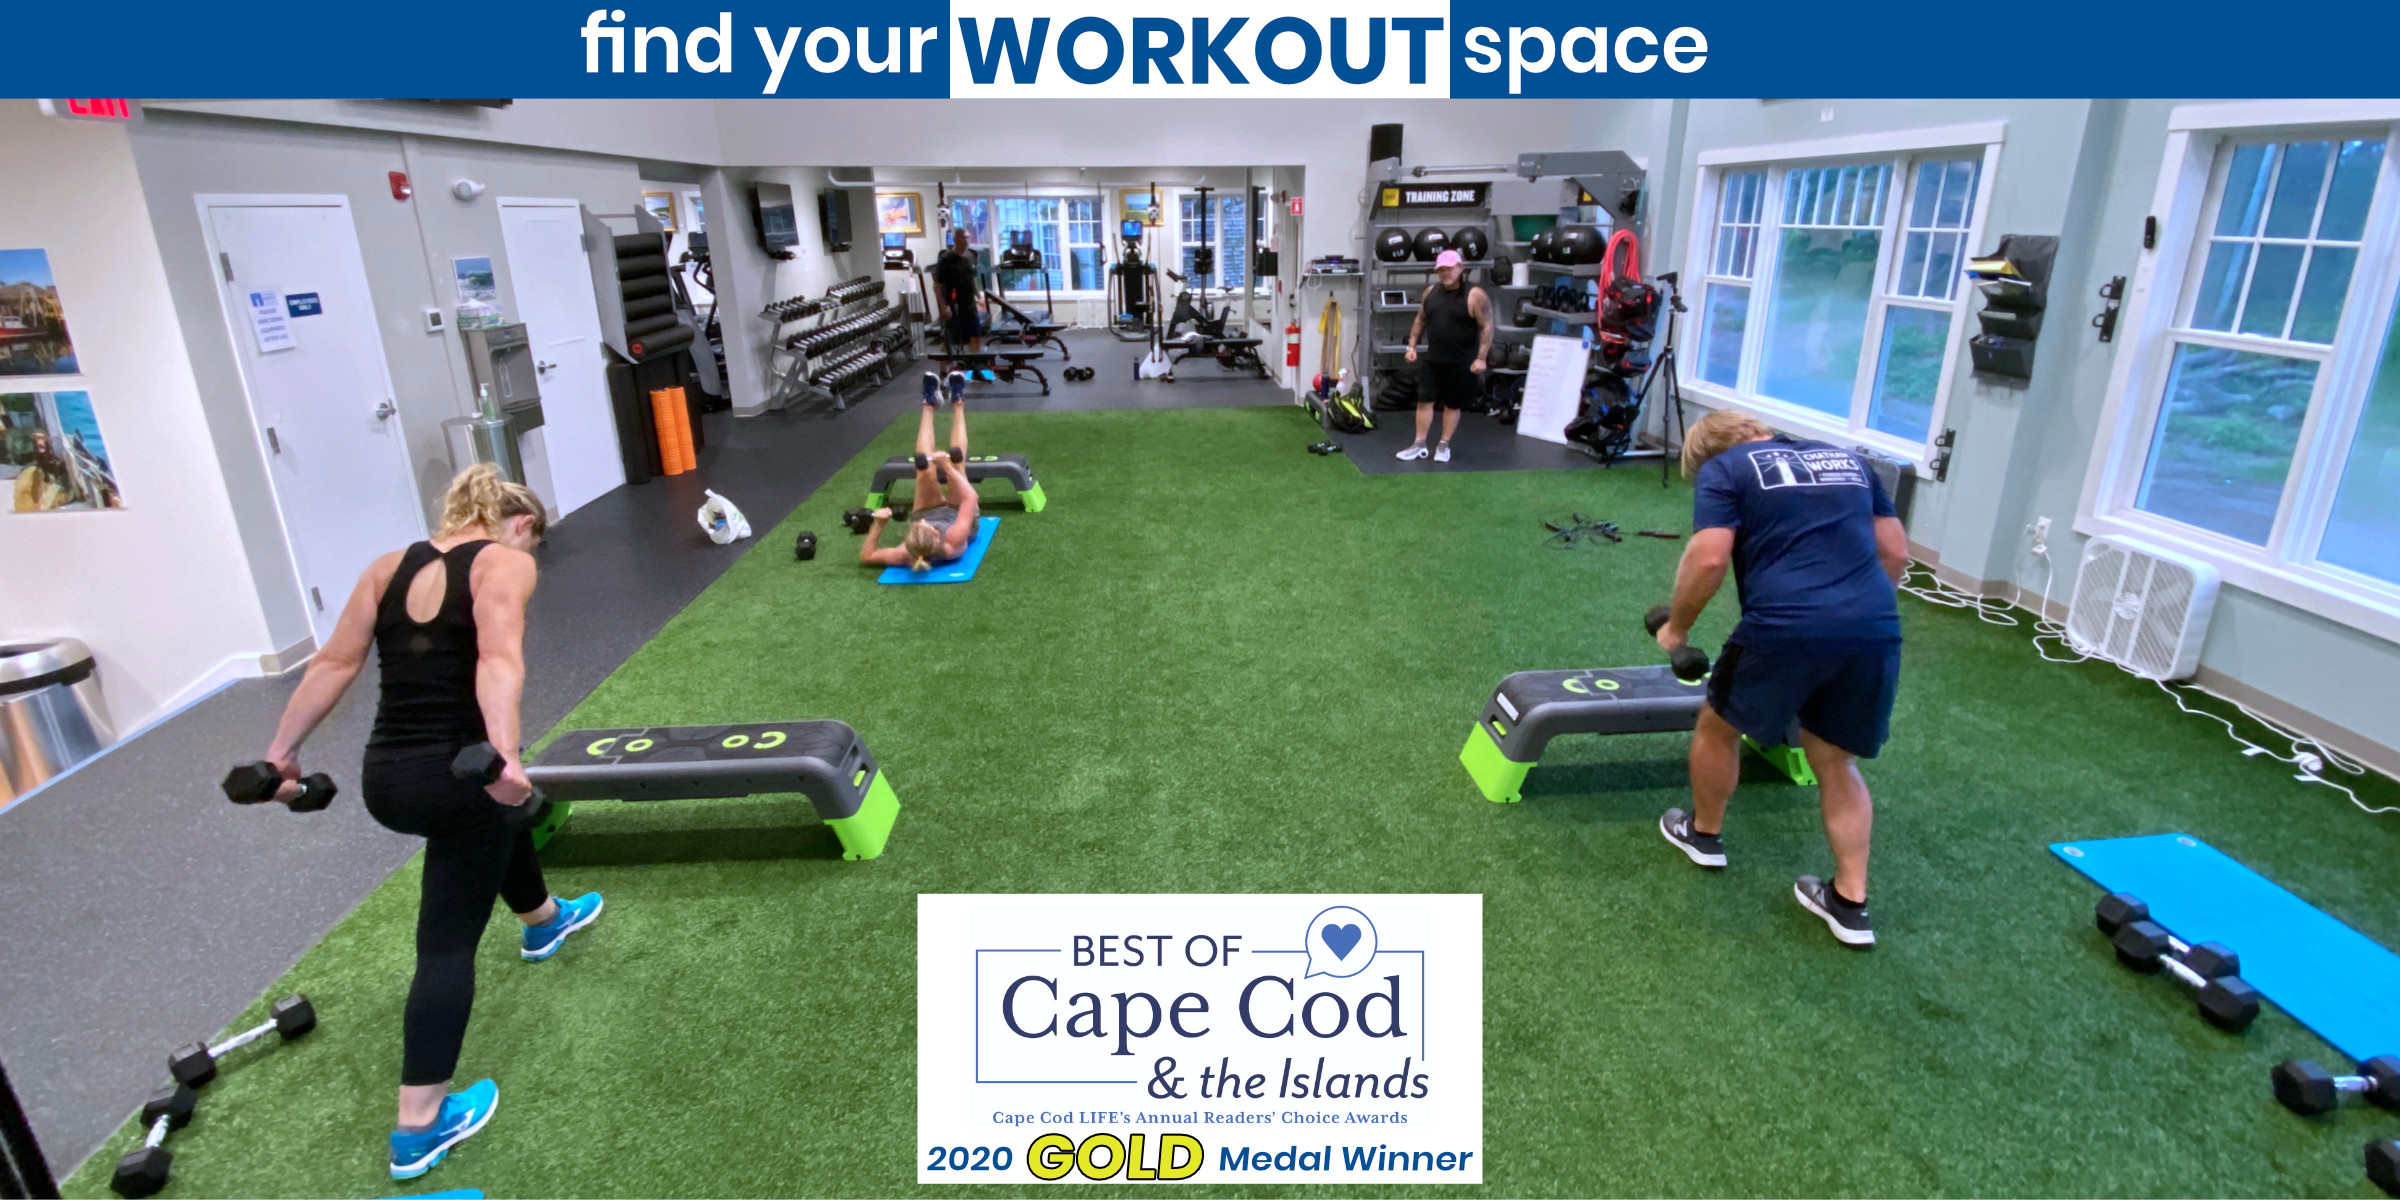 Find your workout space best of 2400x1200